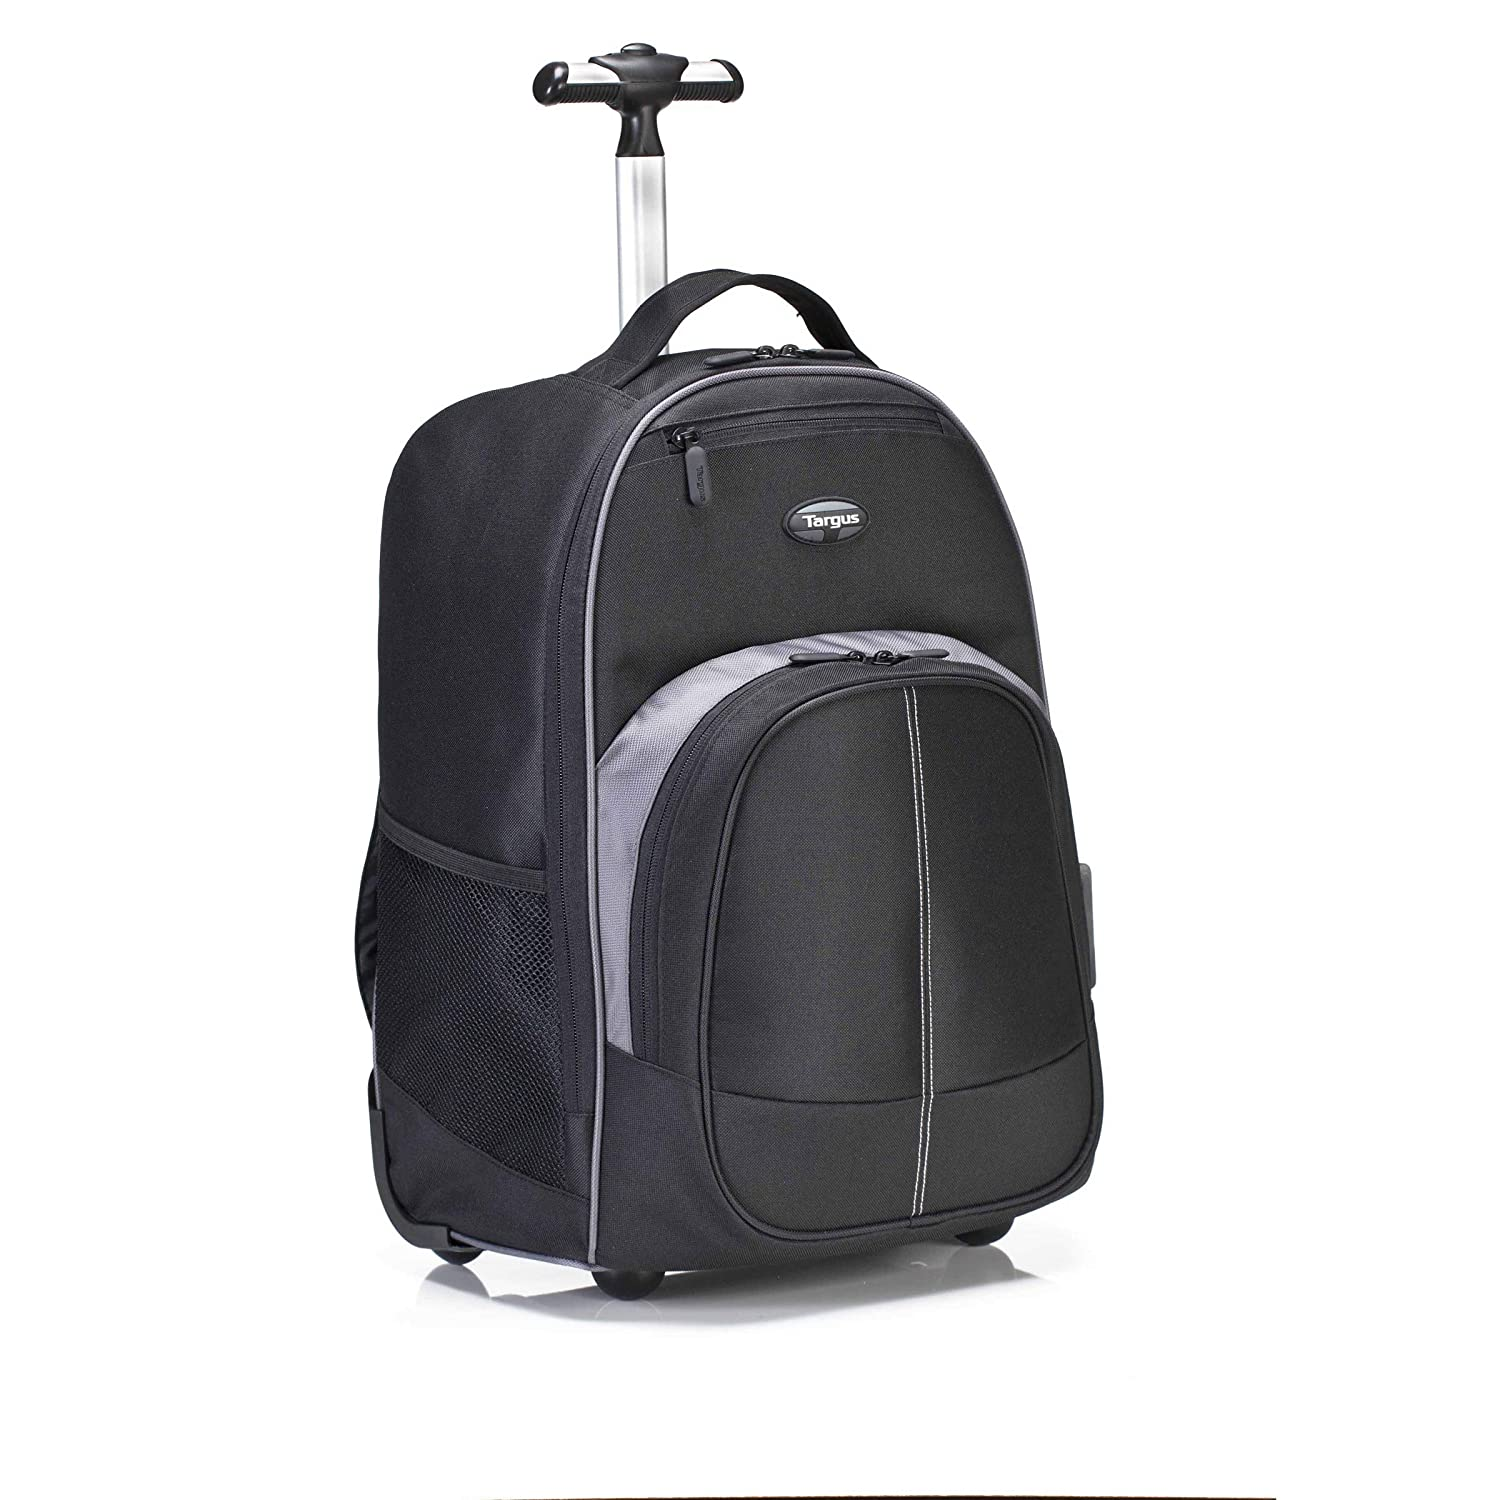 Targus Compact Rolling Business and Travel Commuter Backpack for 16-Inch Laptop, Black TSB750US